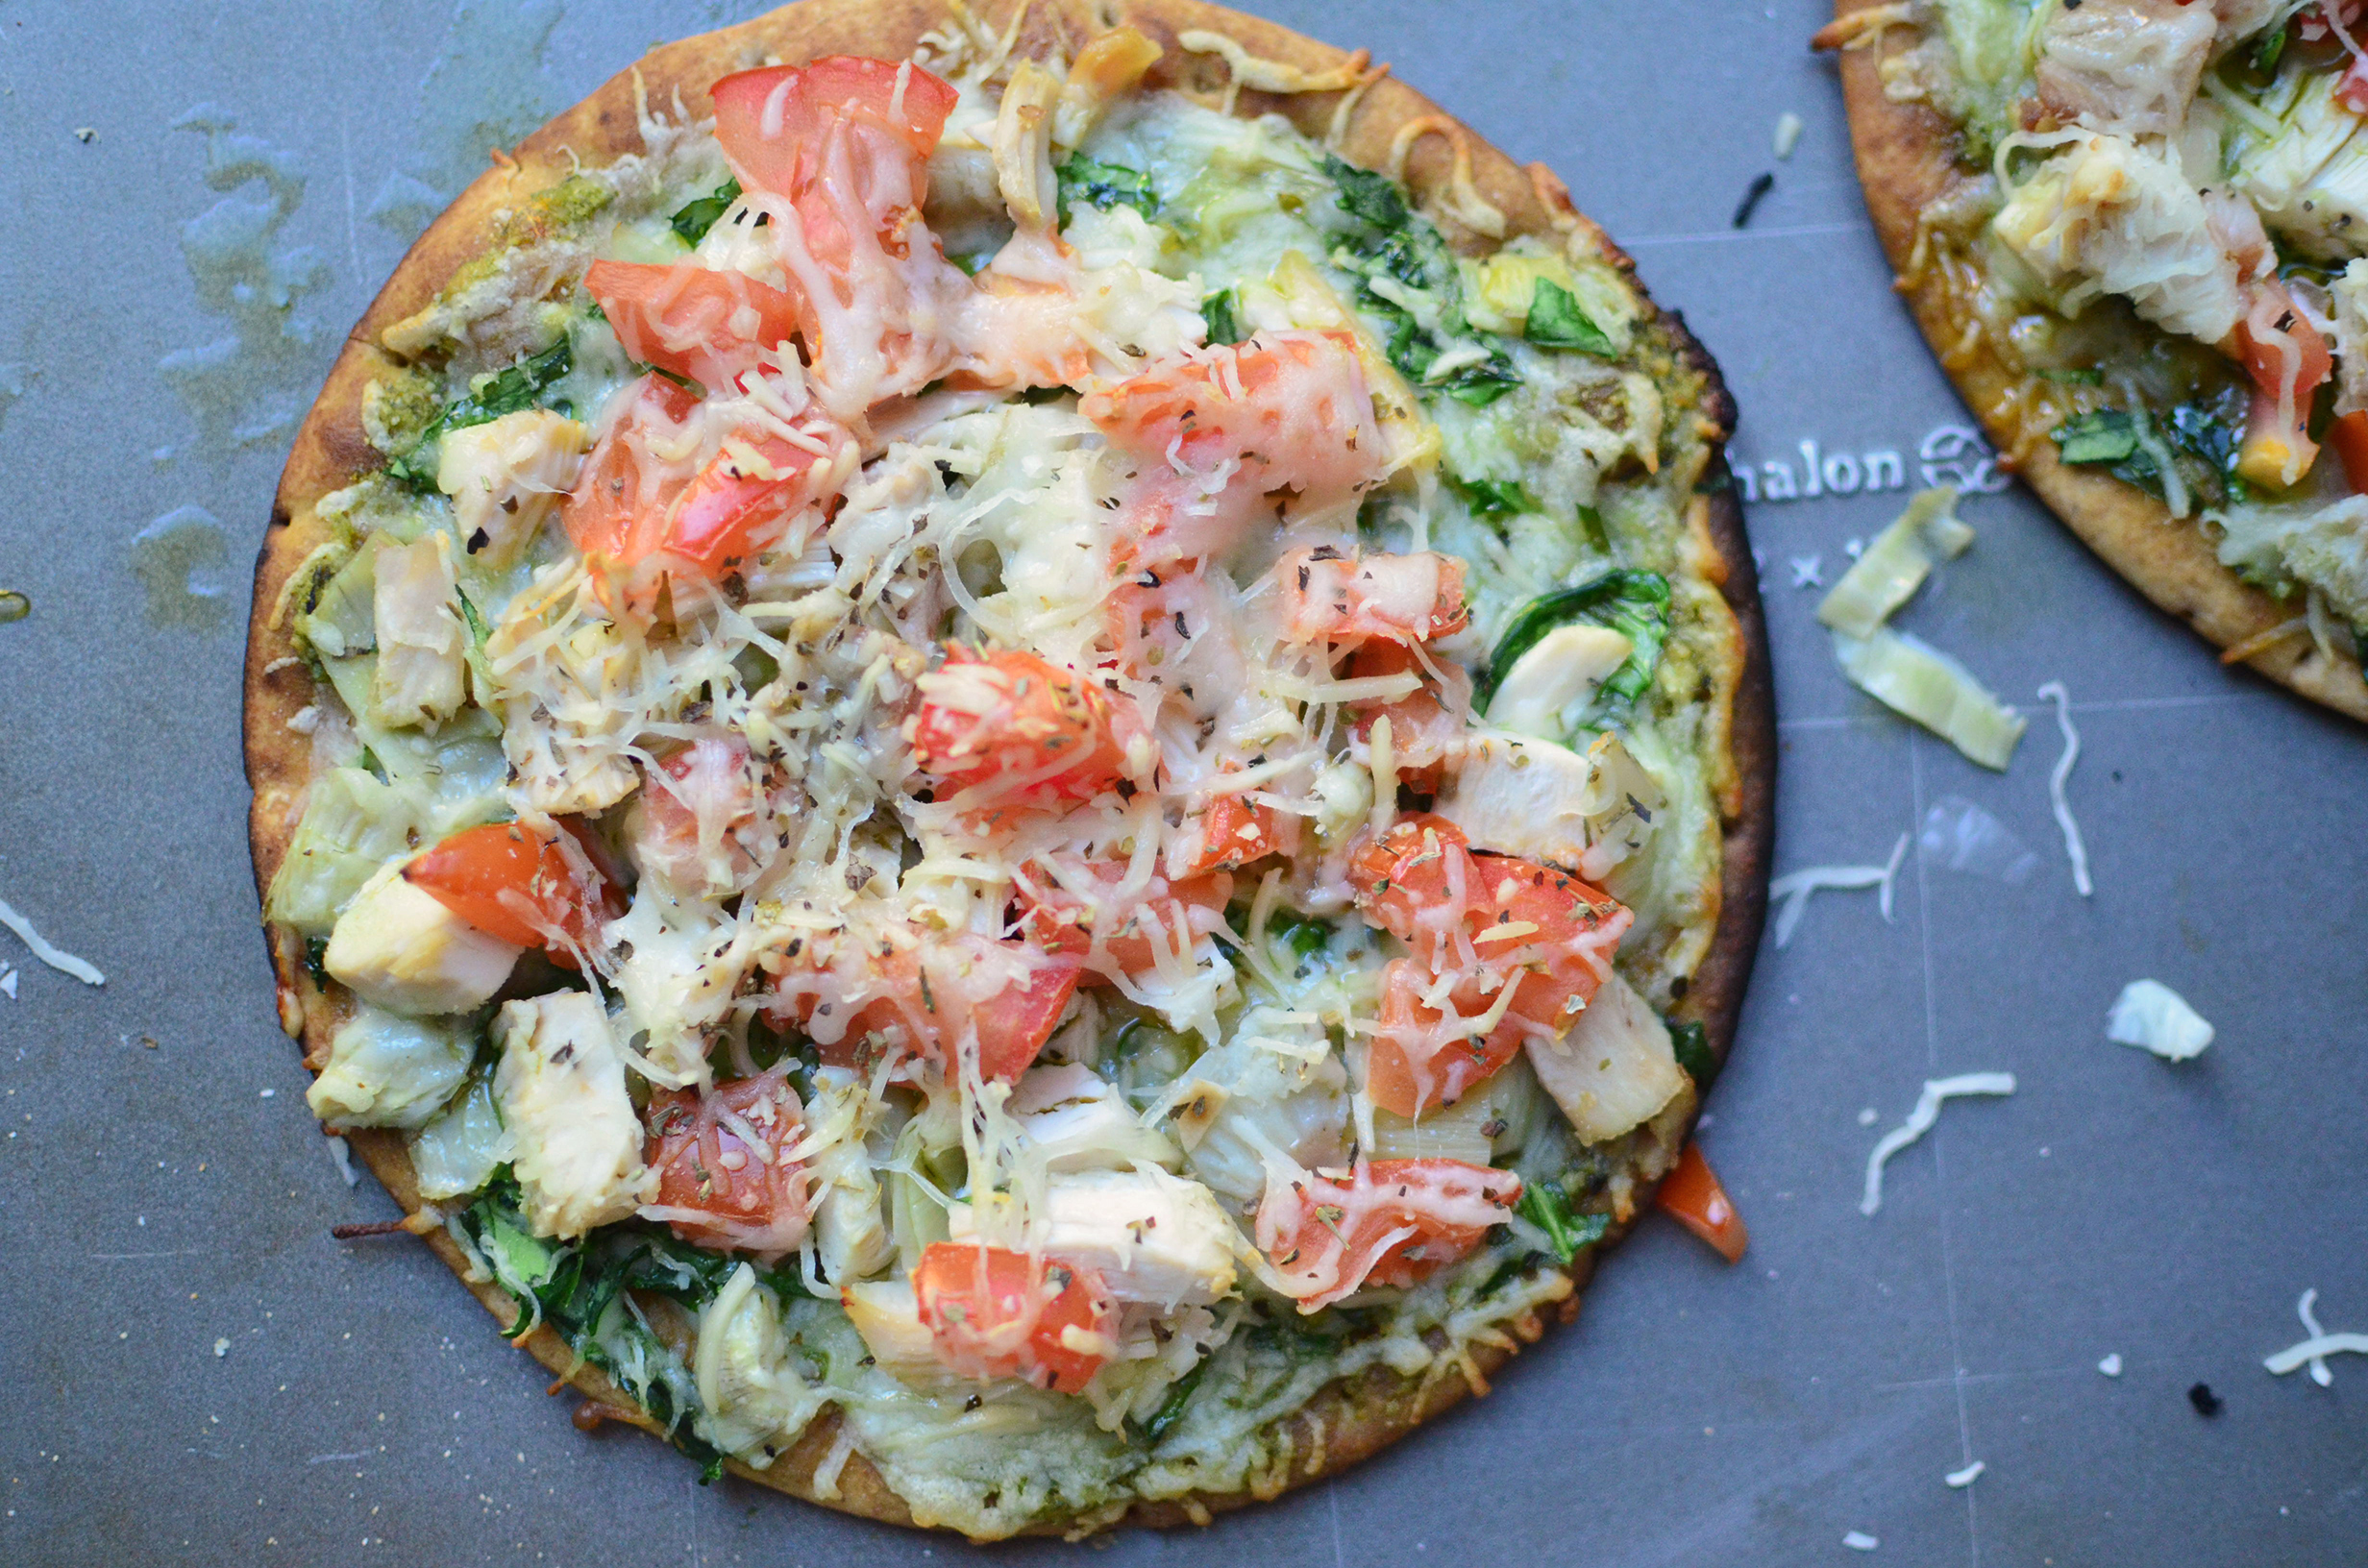 Grilled Spinach and Artichoke Flatbread aerial 2